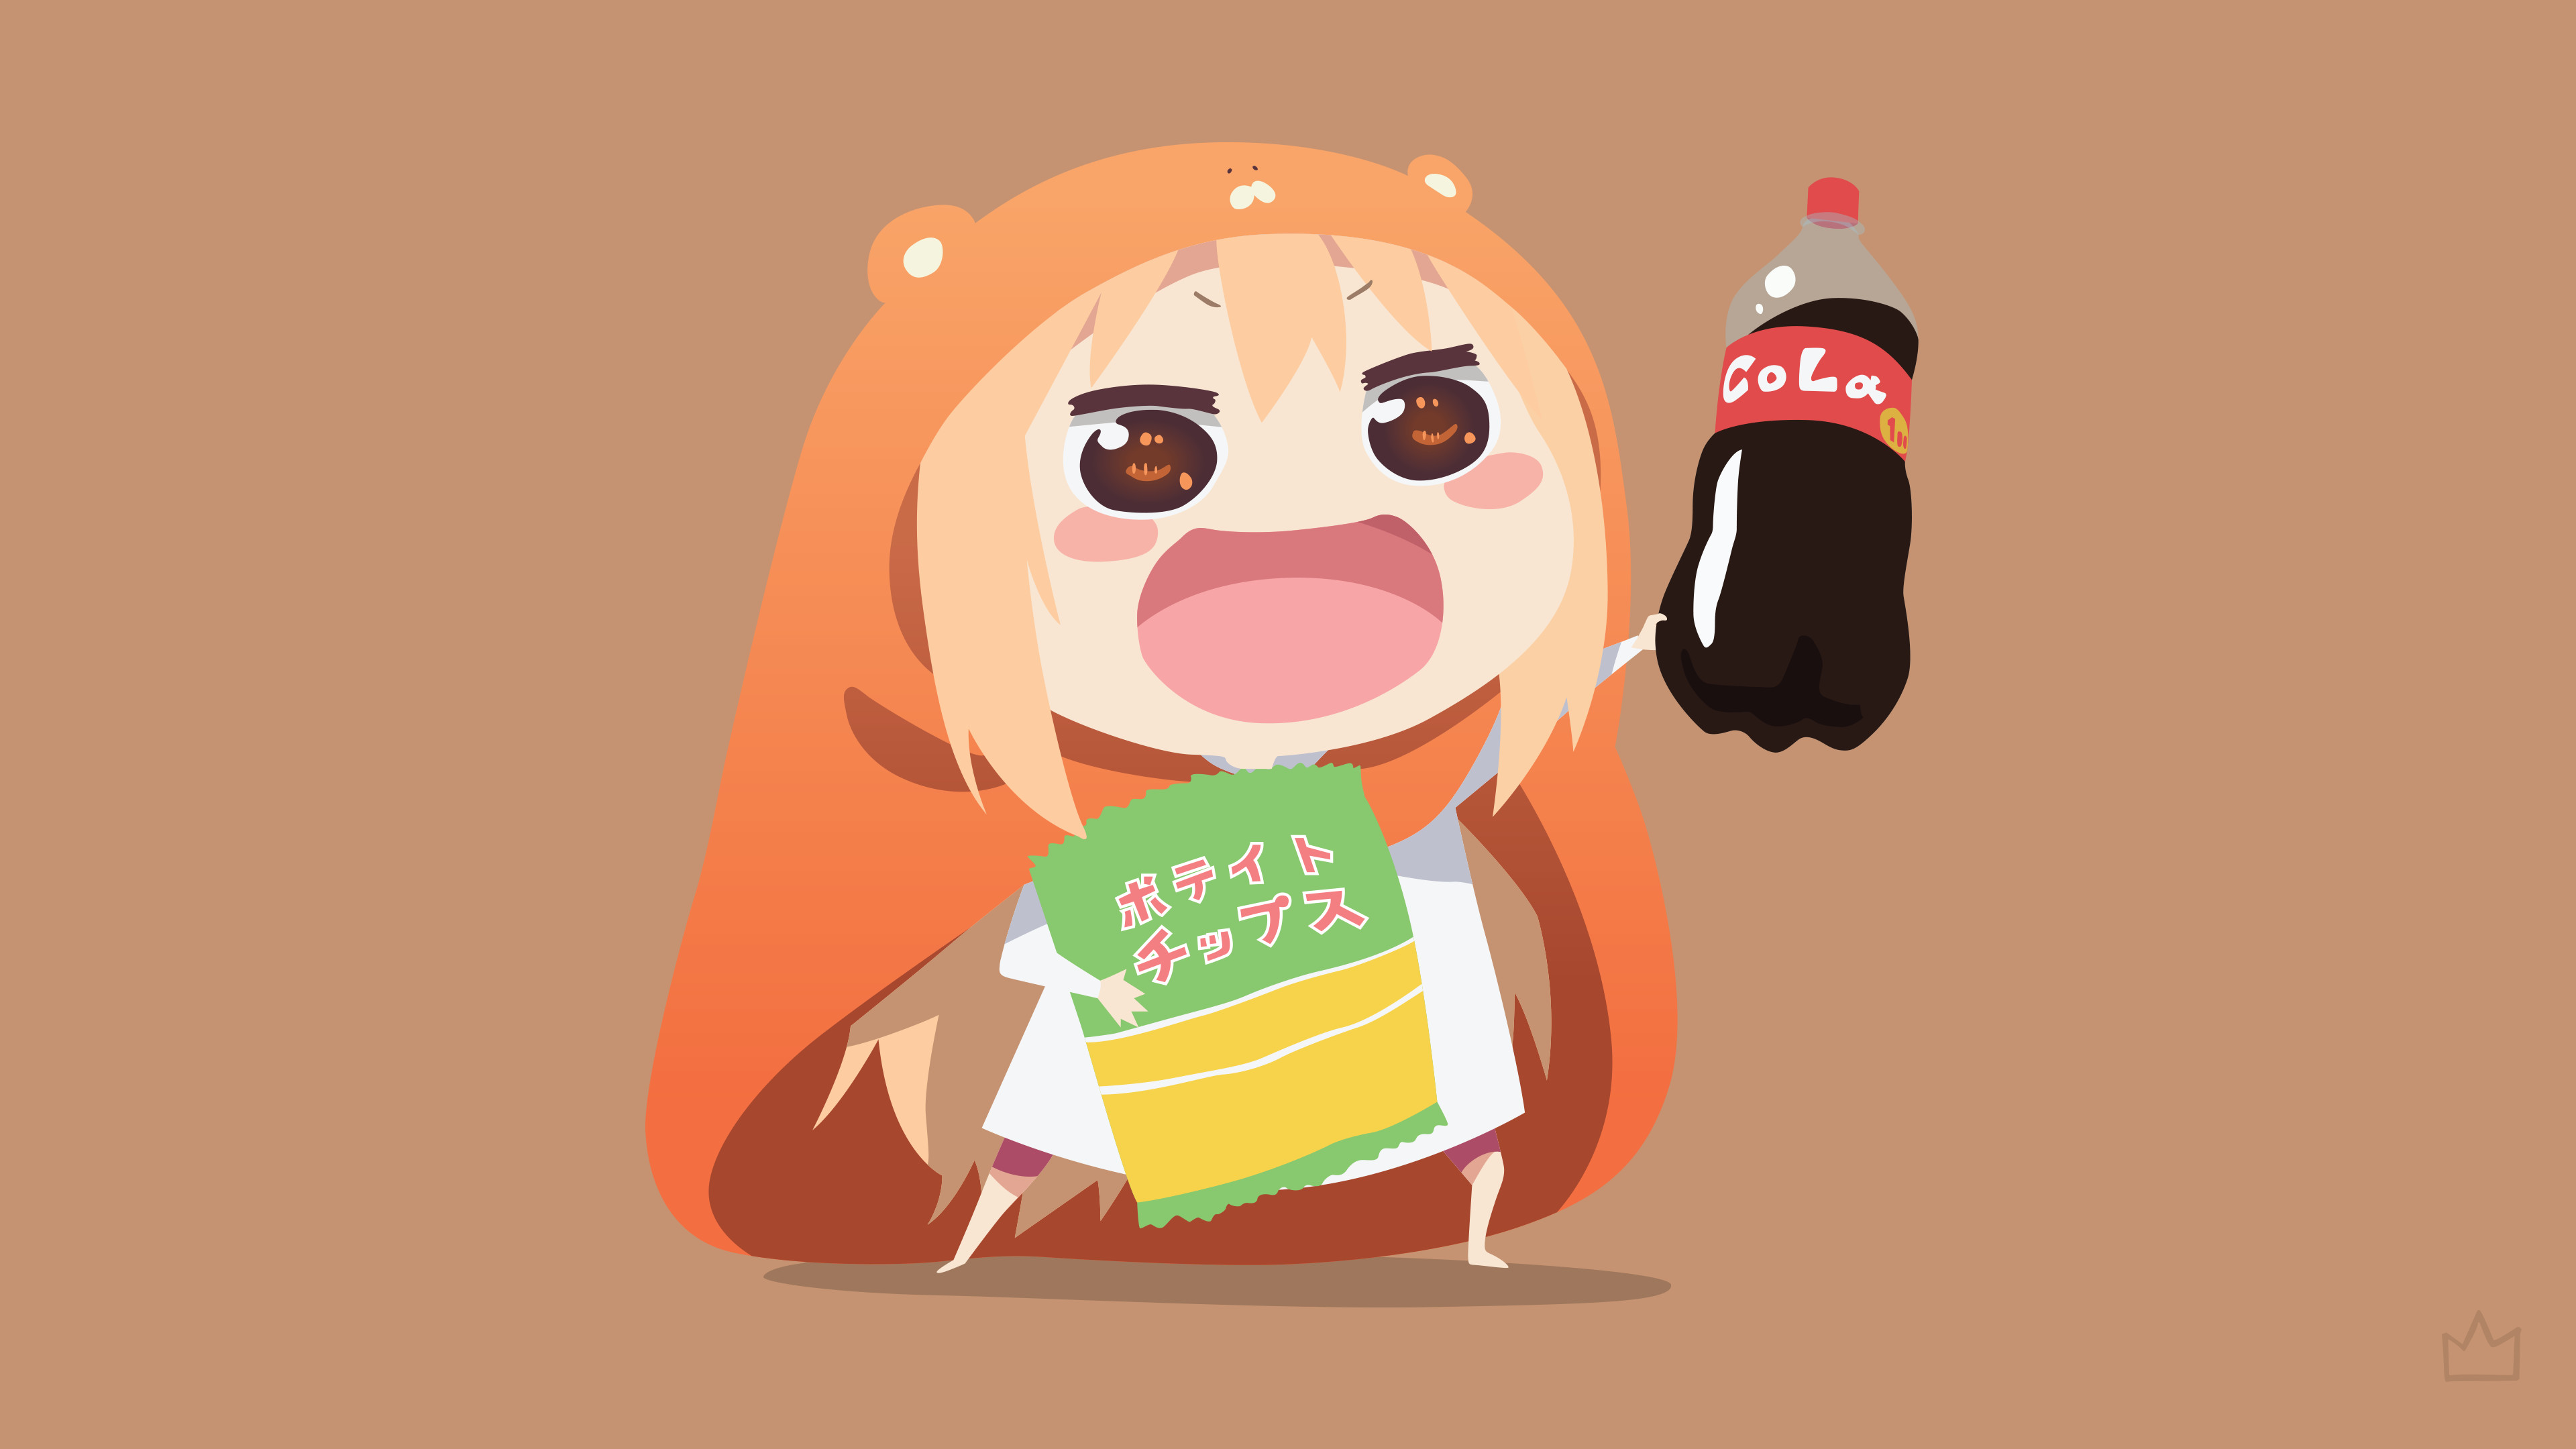 Res: 3840x2160, Himouto! Umaru-chan High Quality Background on Walls Cover